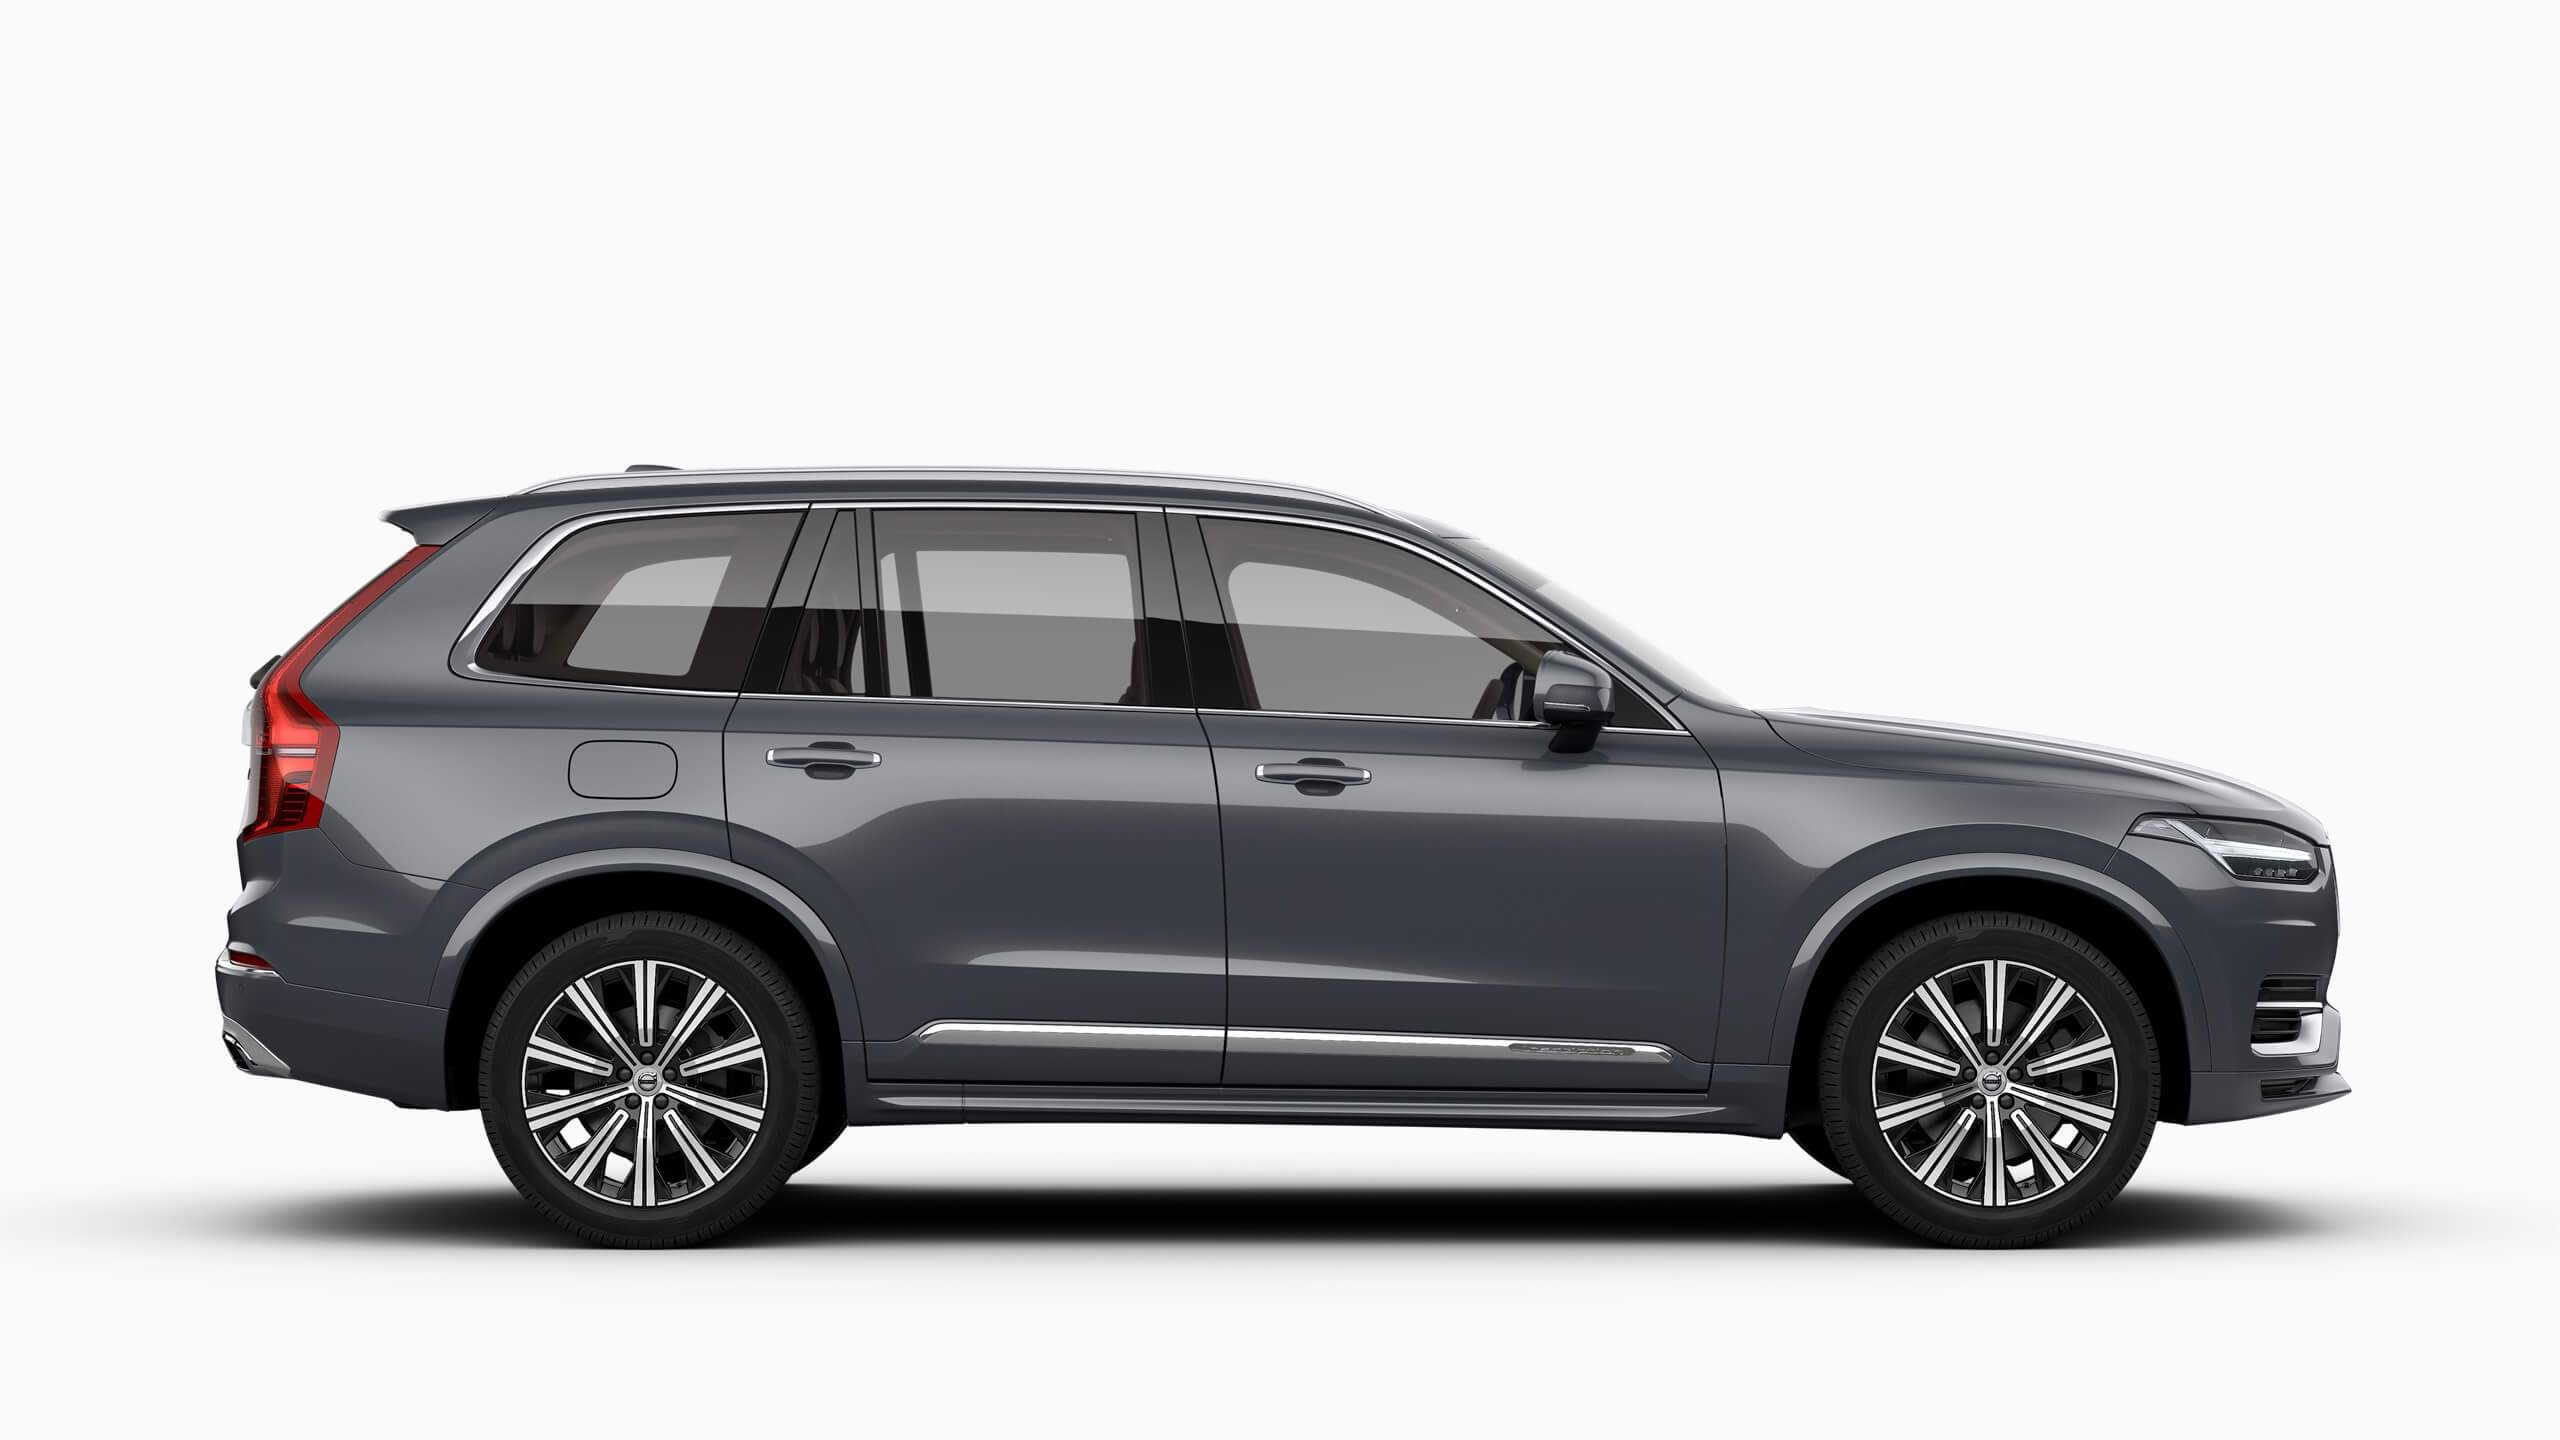 01_Thunder_Grey_metallic_XC90